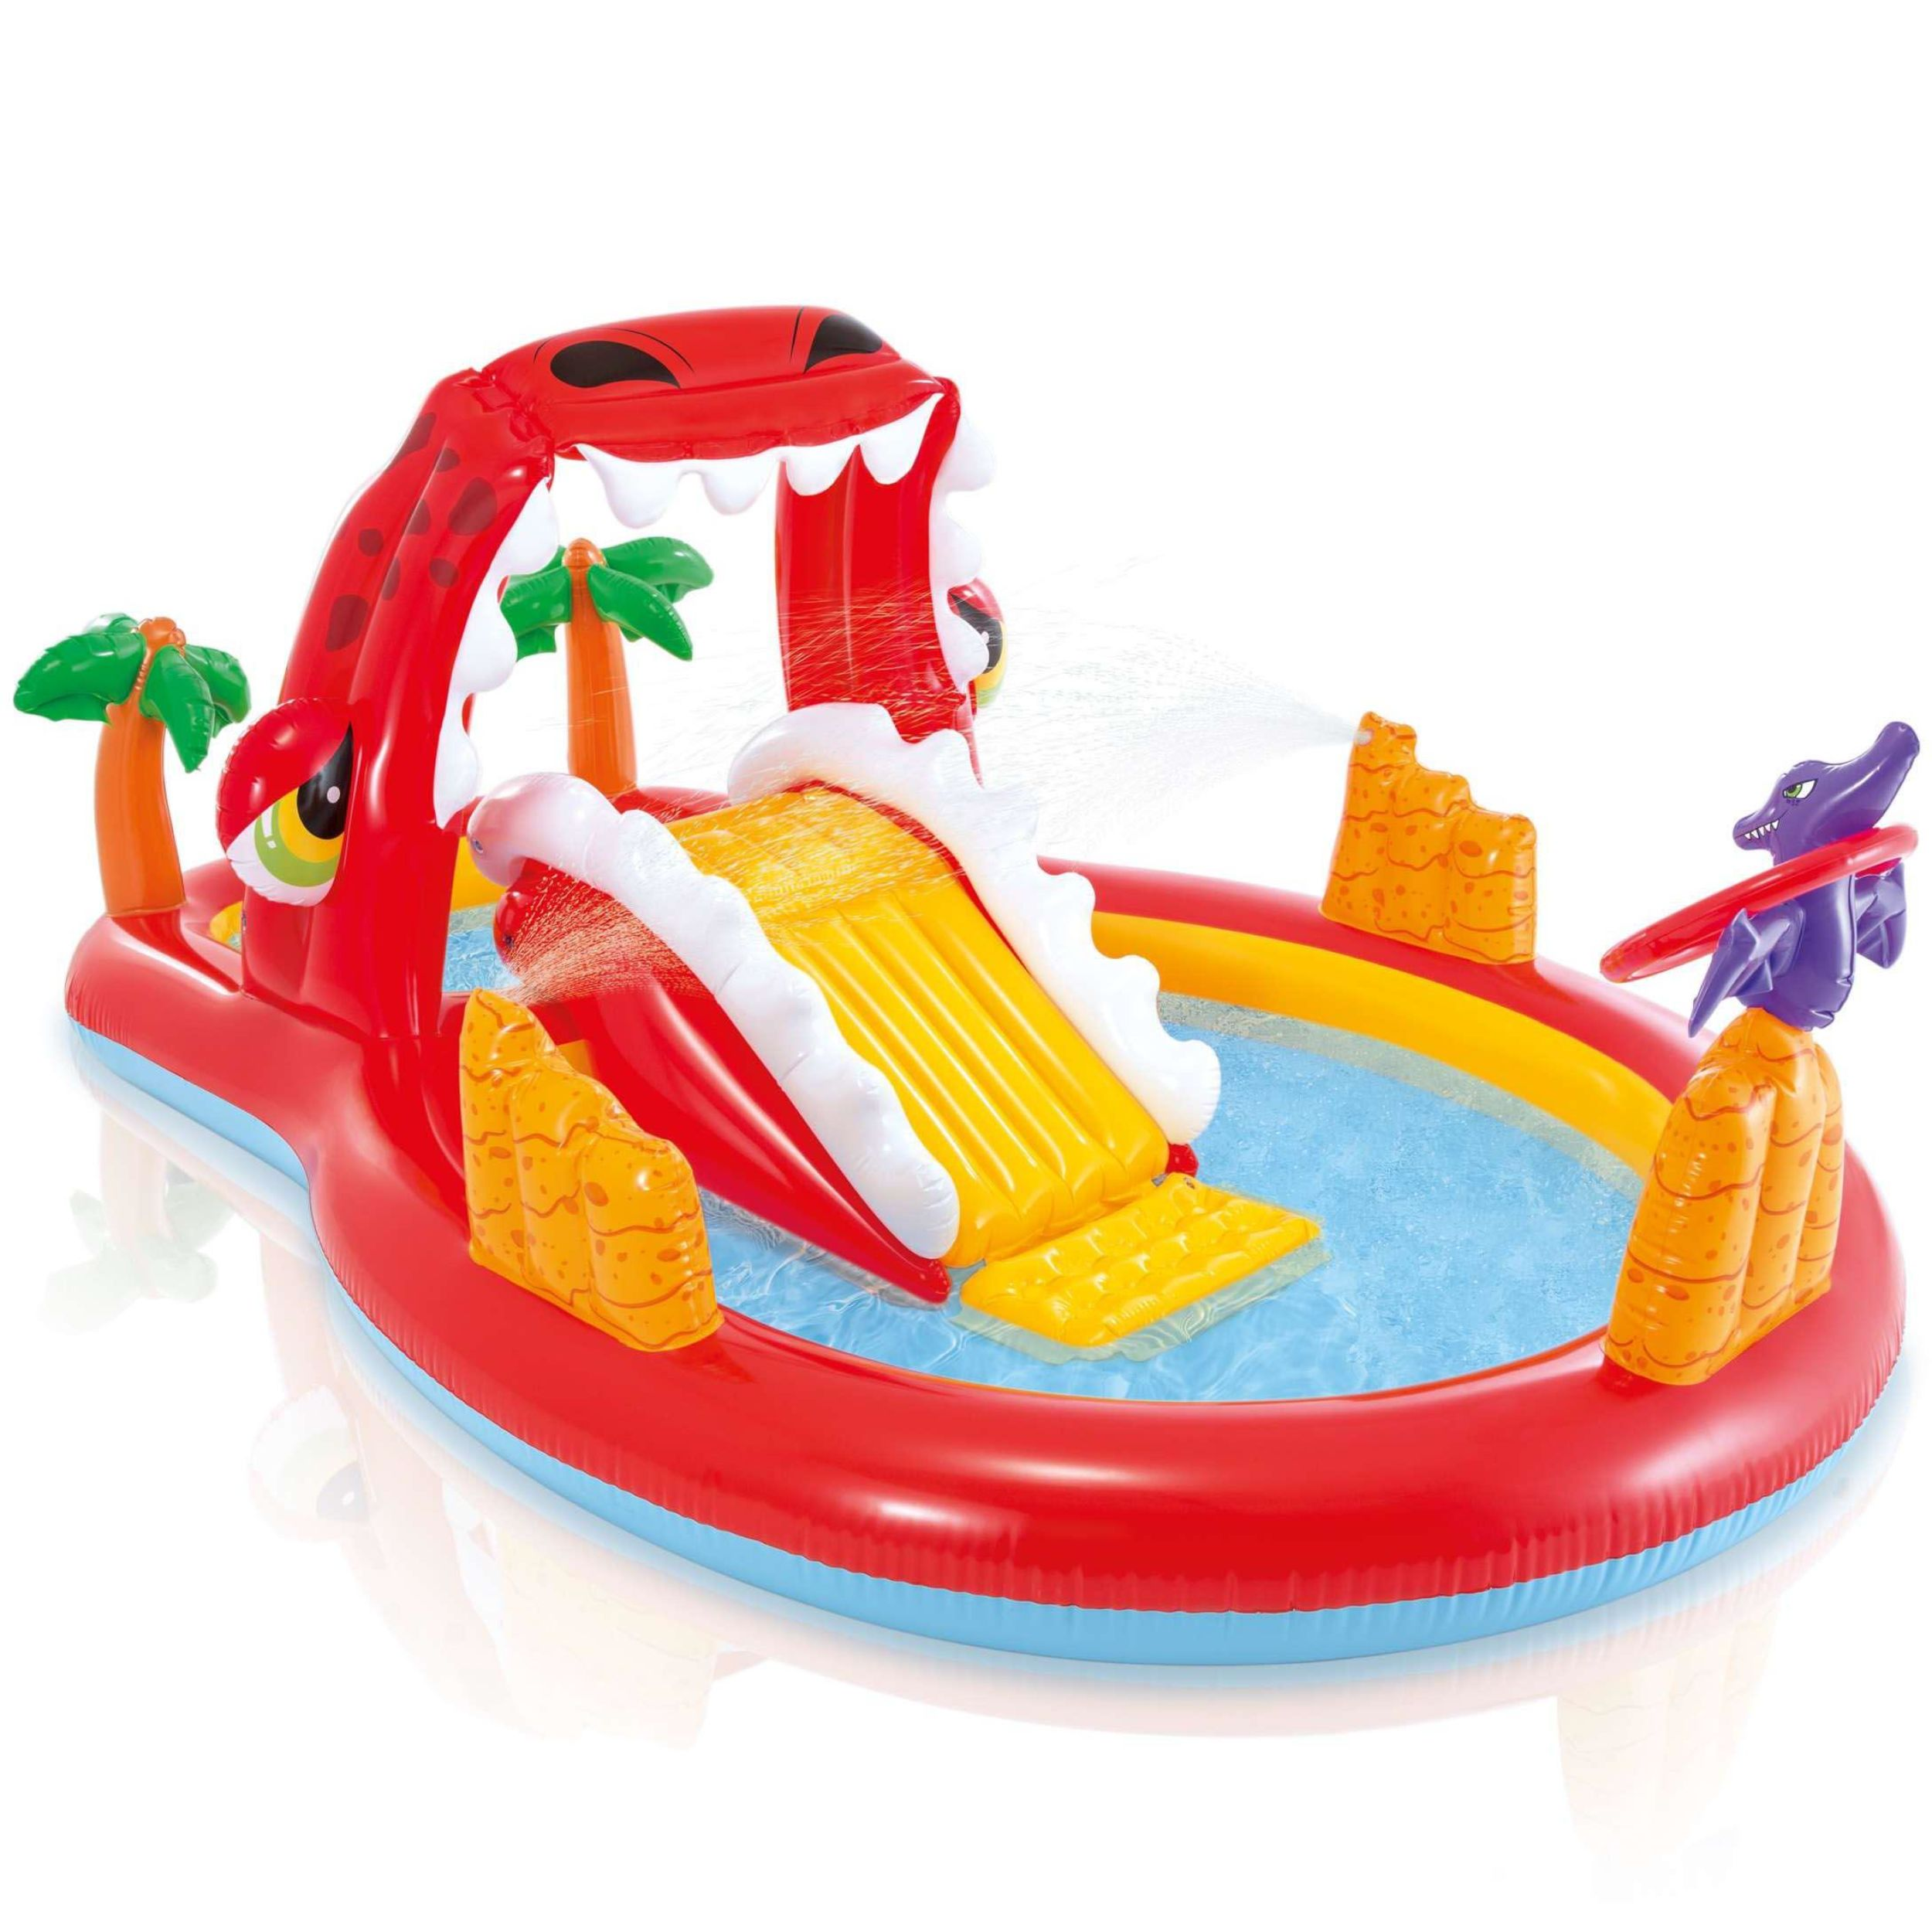 Intex zwembad Happy Dino playcenter 196 cm